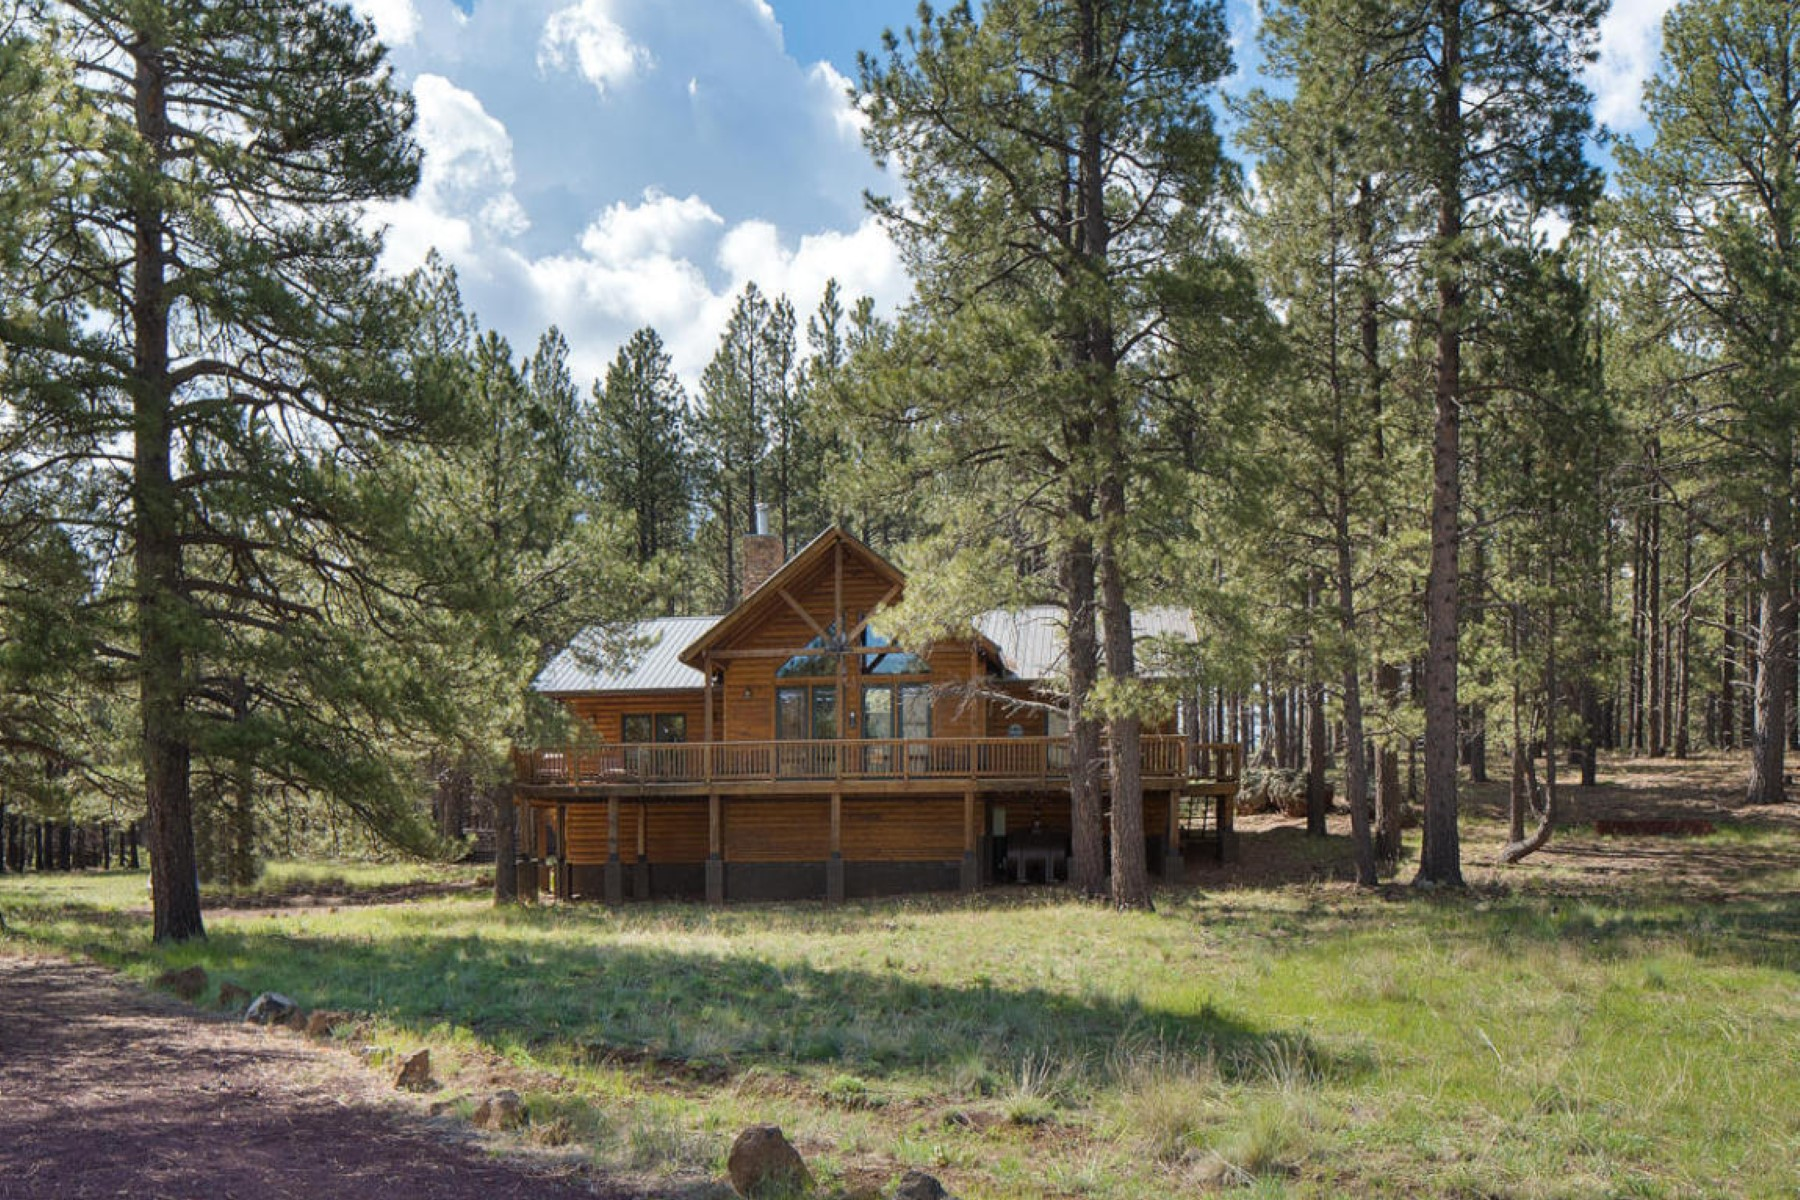 Single Family Home for Sale at This is a rare opportunity to own a private custom log sided mountain retreat. 17242 Crowley TRL Flagstaff, Arizona, 86001 United States